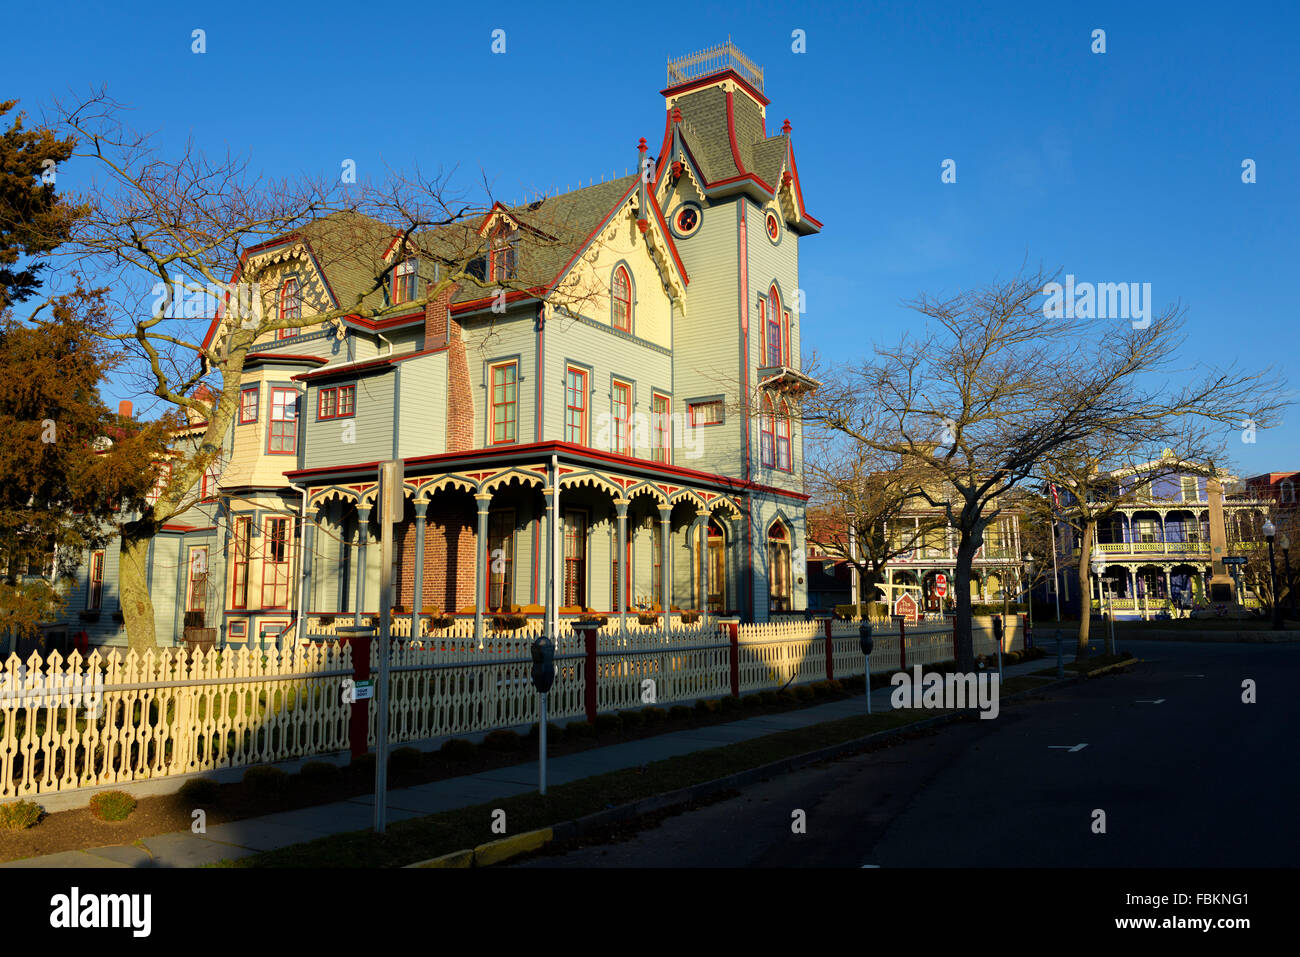 Cape May Stock Photos Amp Cape May Stock Images Alamy